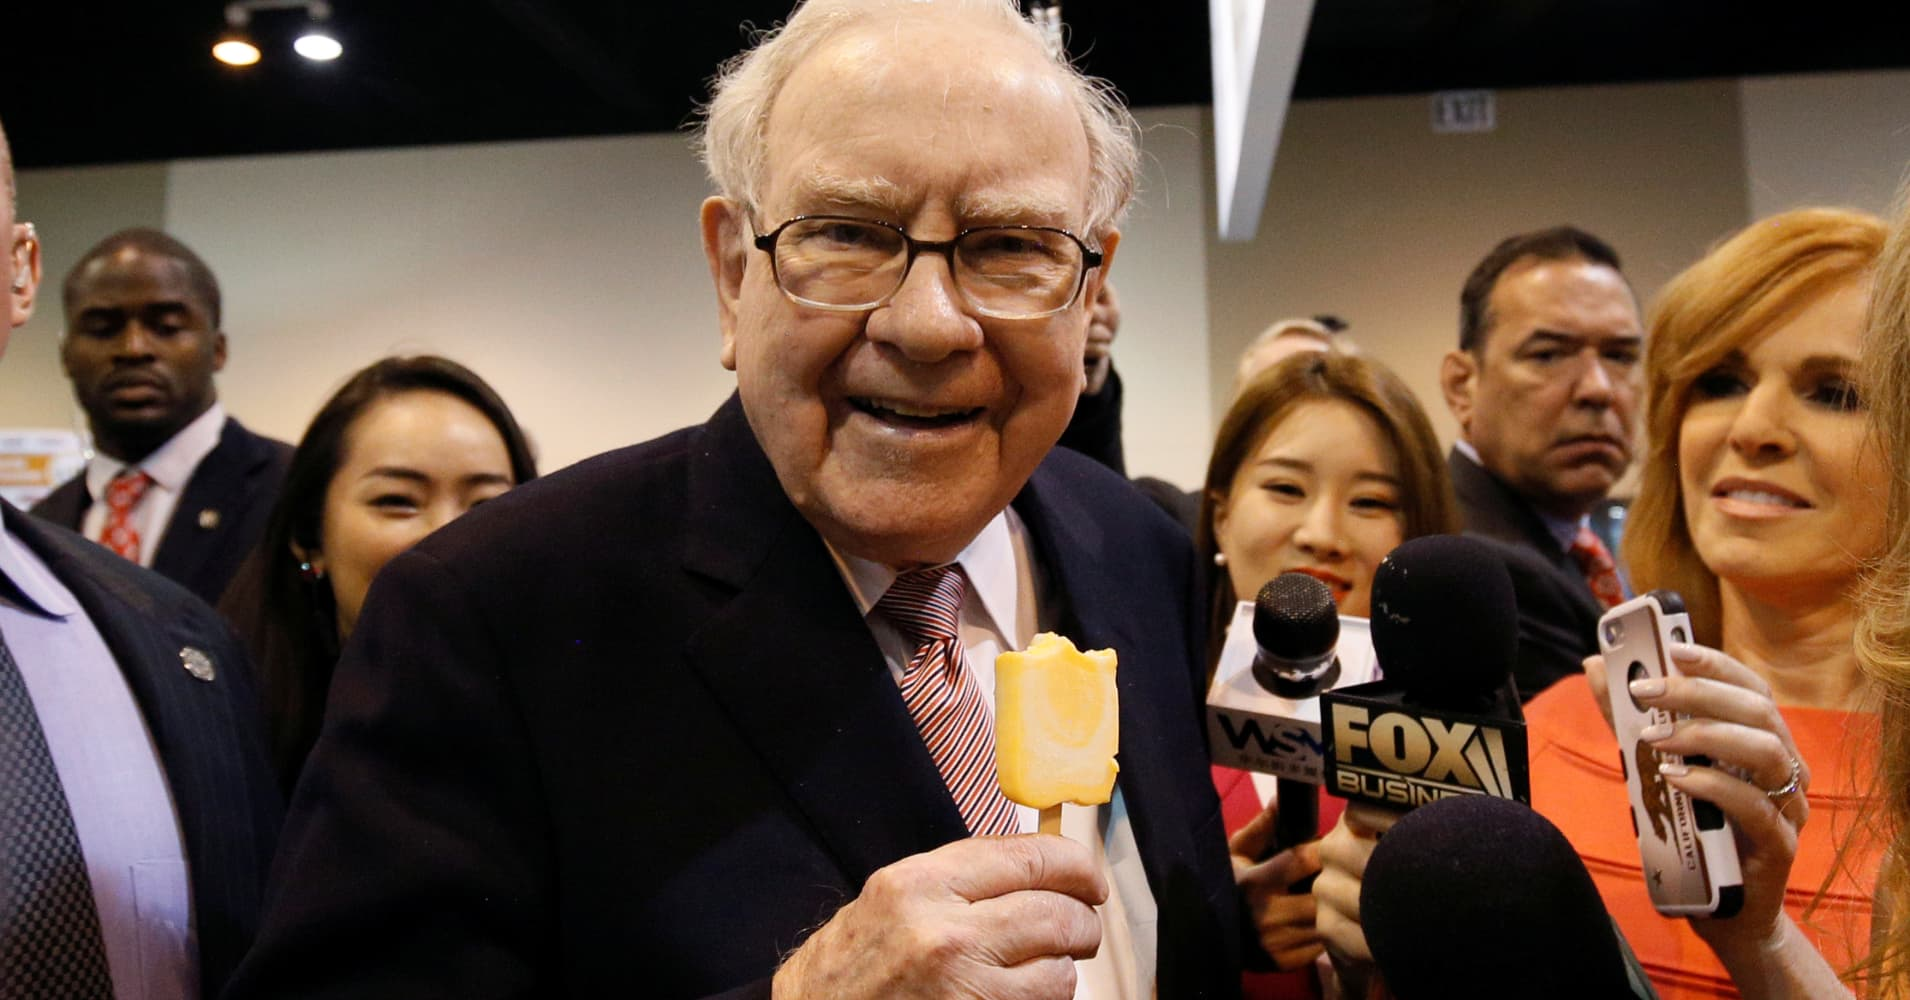 Berkshire Hathaway chairman and CEO Warren Buffett enjoys an ice cream treat from Dairy Queen before the company's annual meeting.